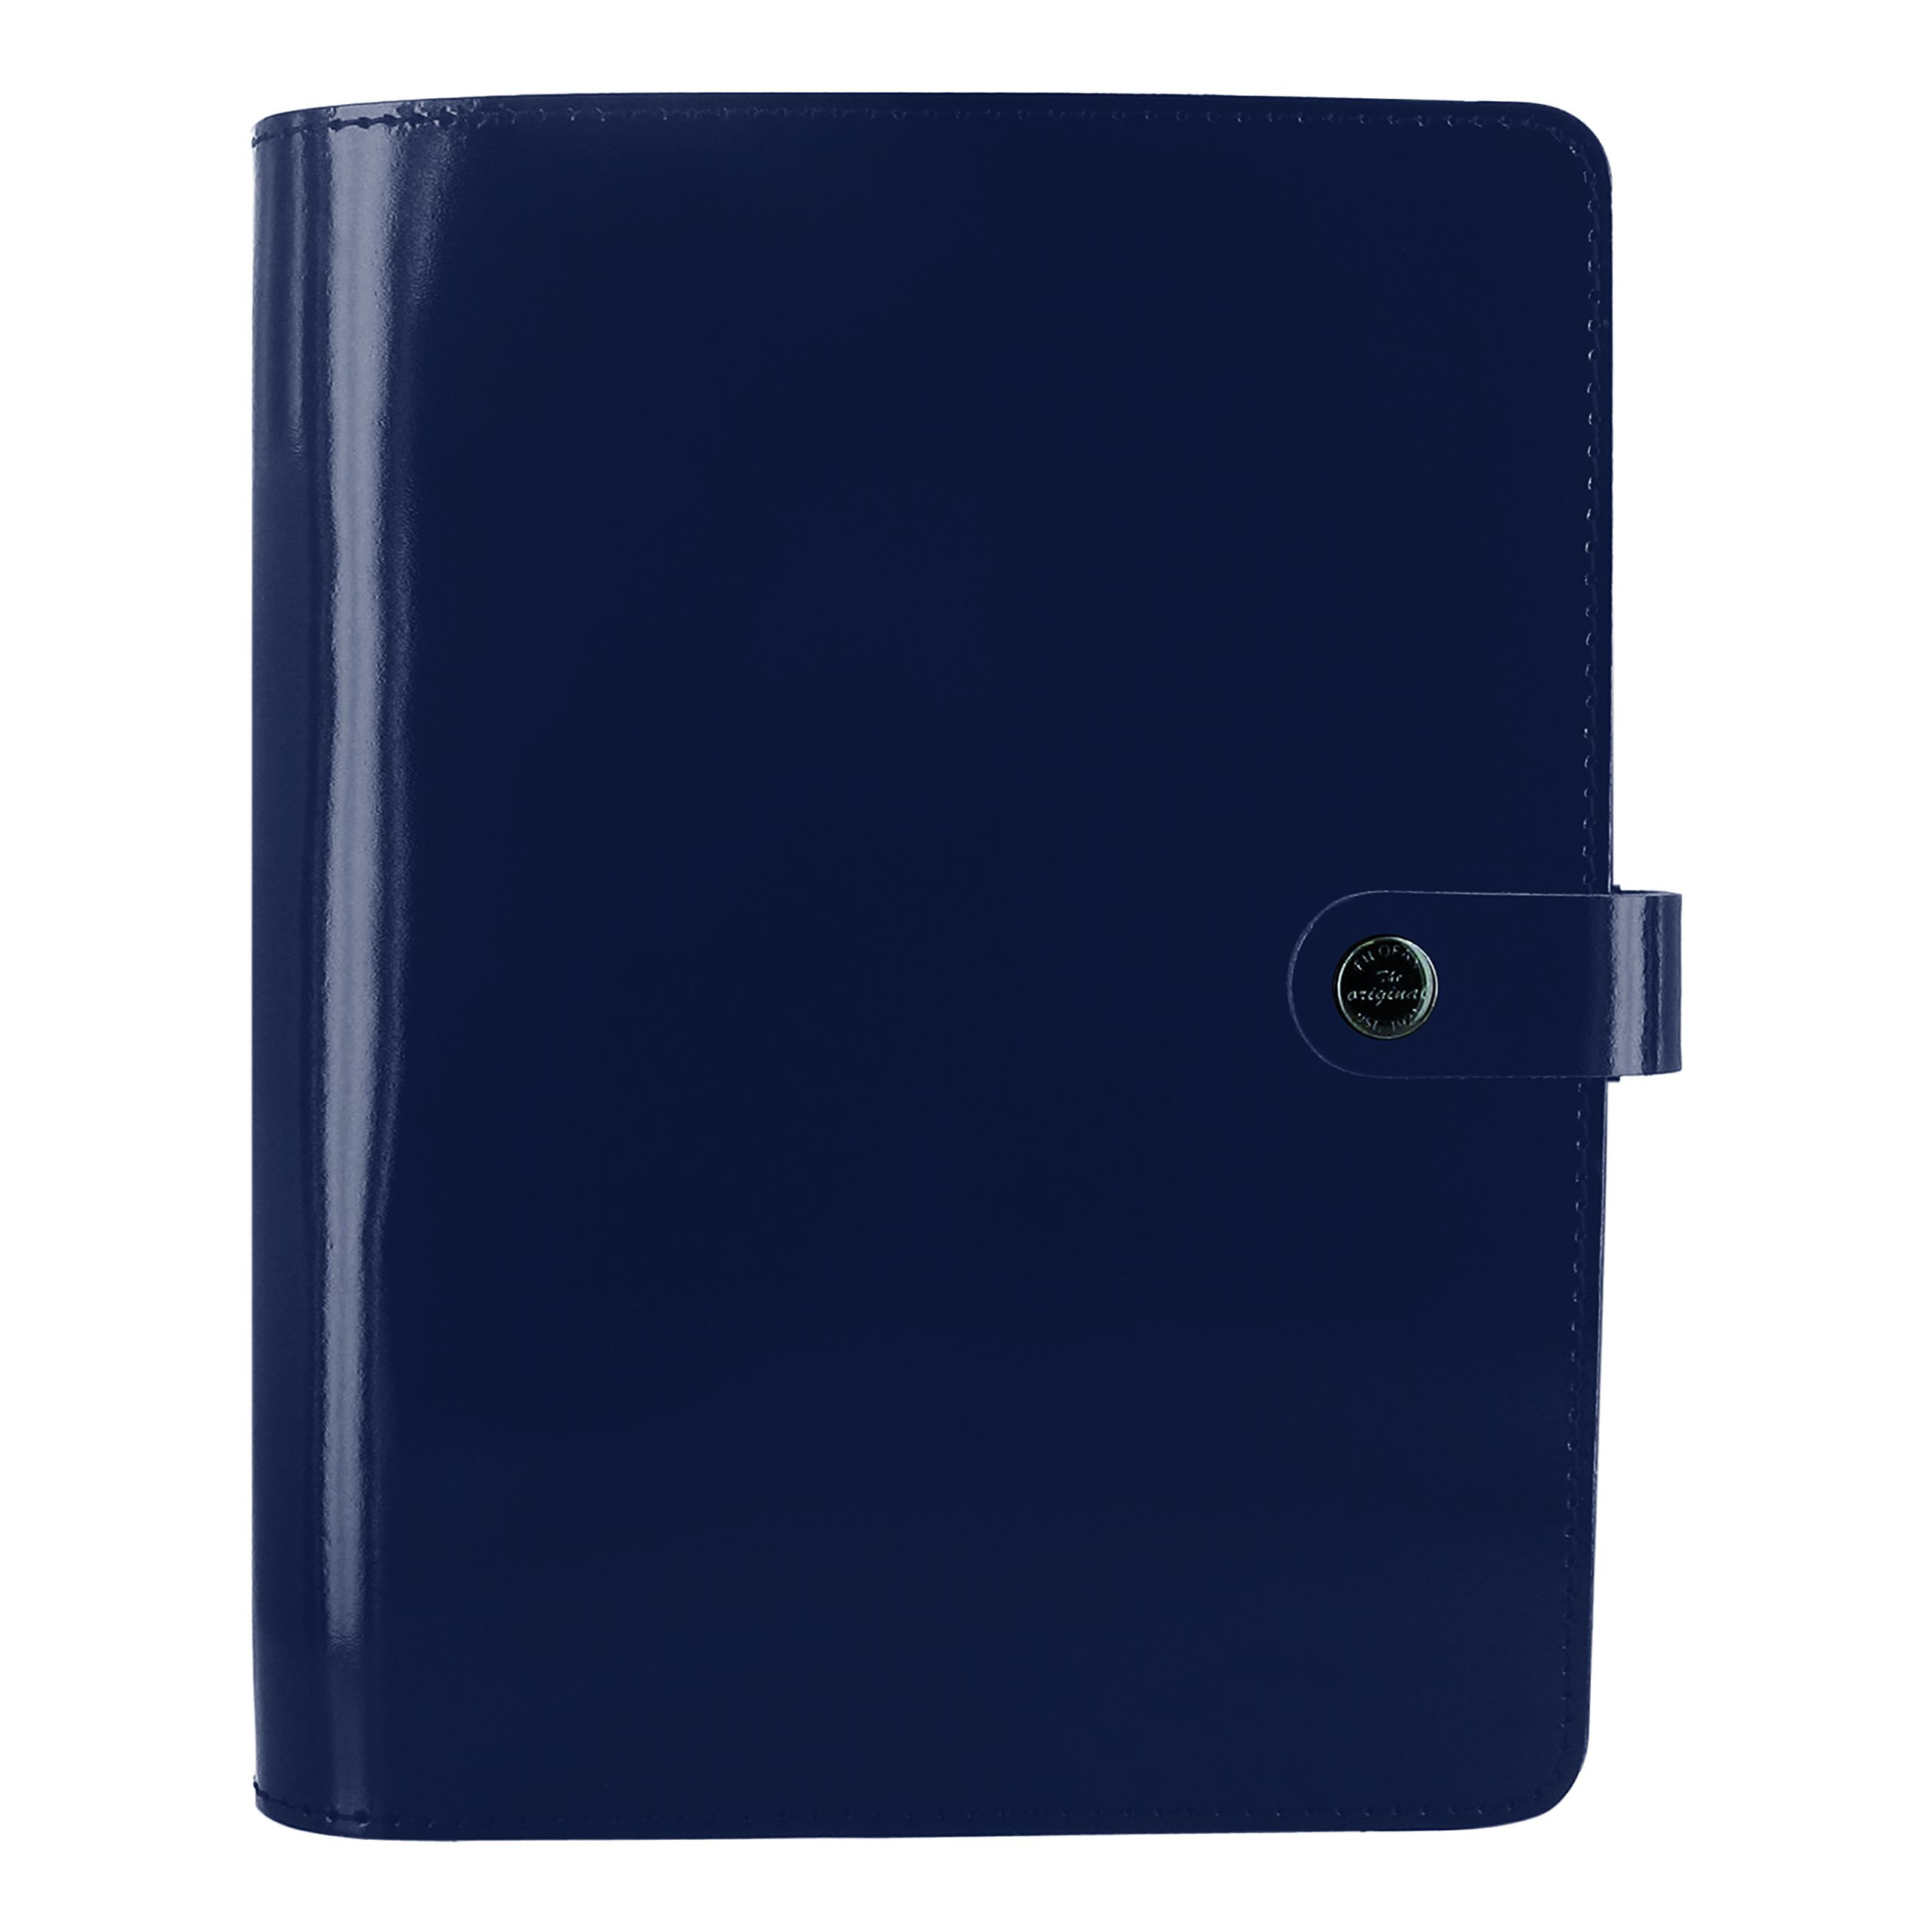 Filofax The Original Leather Organizer, Retro Navy, A5 (8.25 x 5.75) Any Year Planner with to do and contacts refills, indexes and notepaper (C022385)